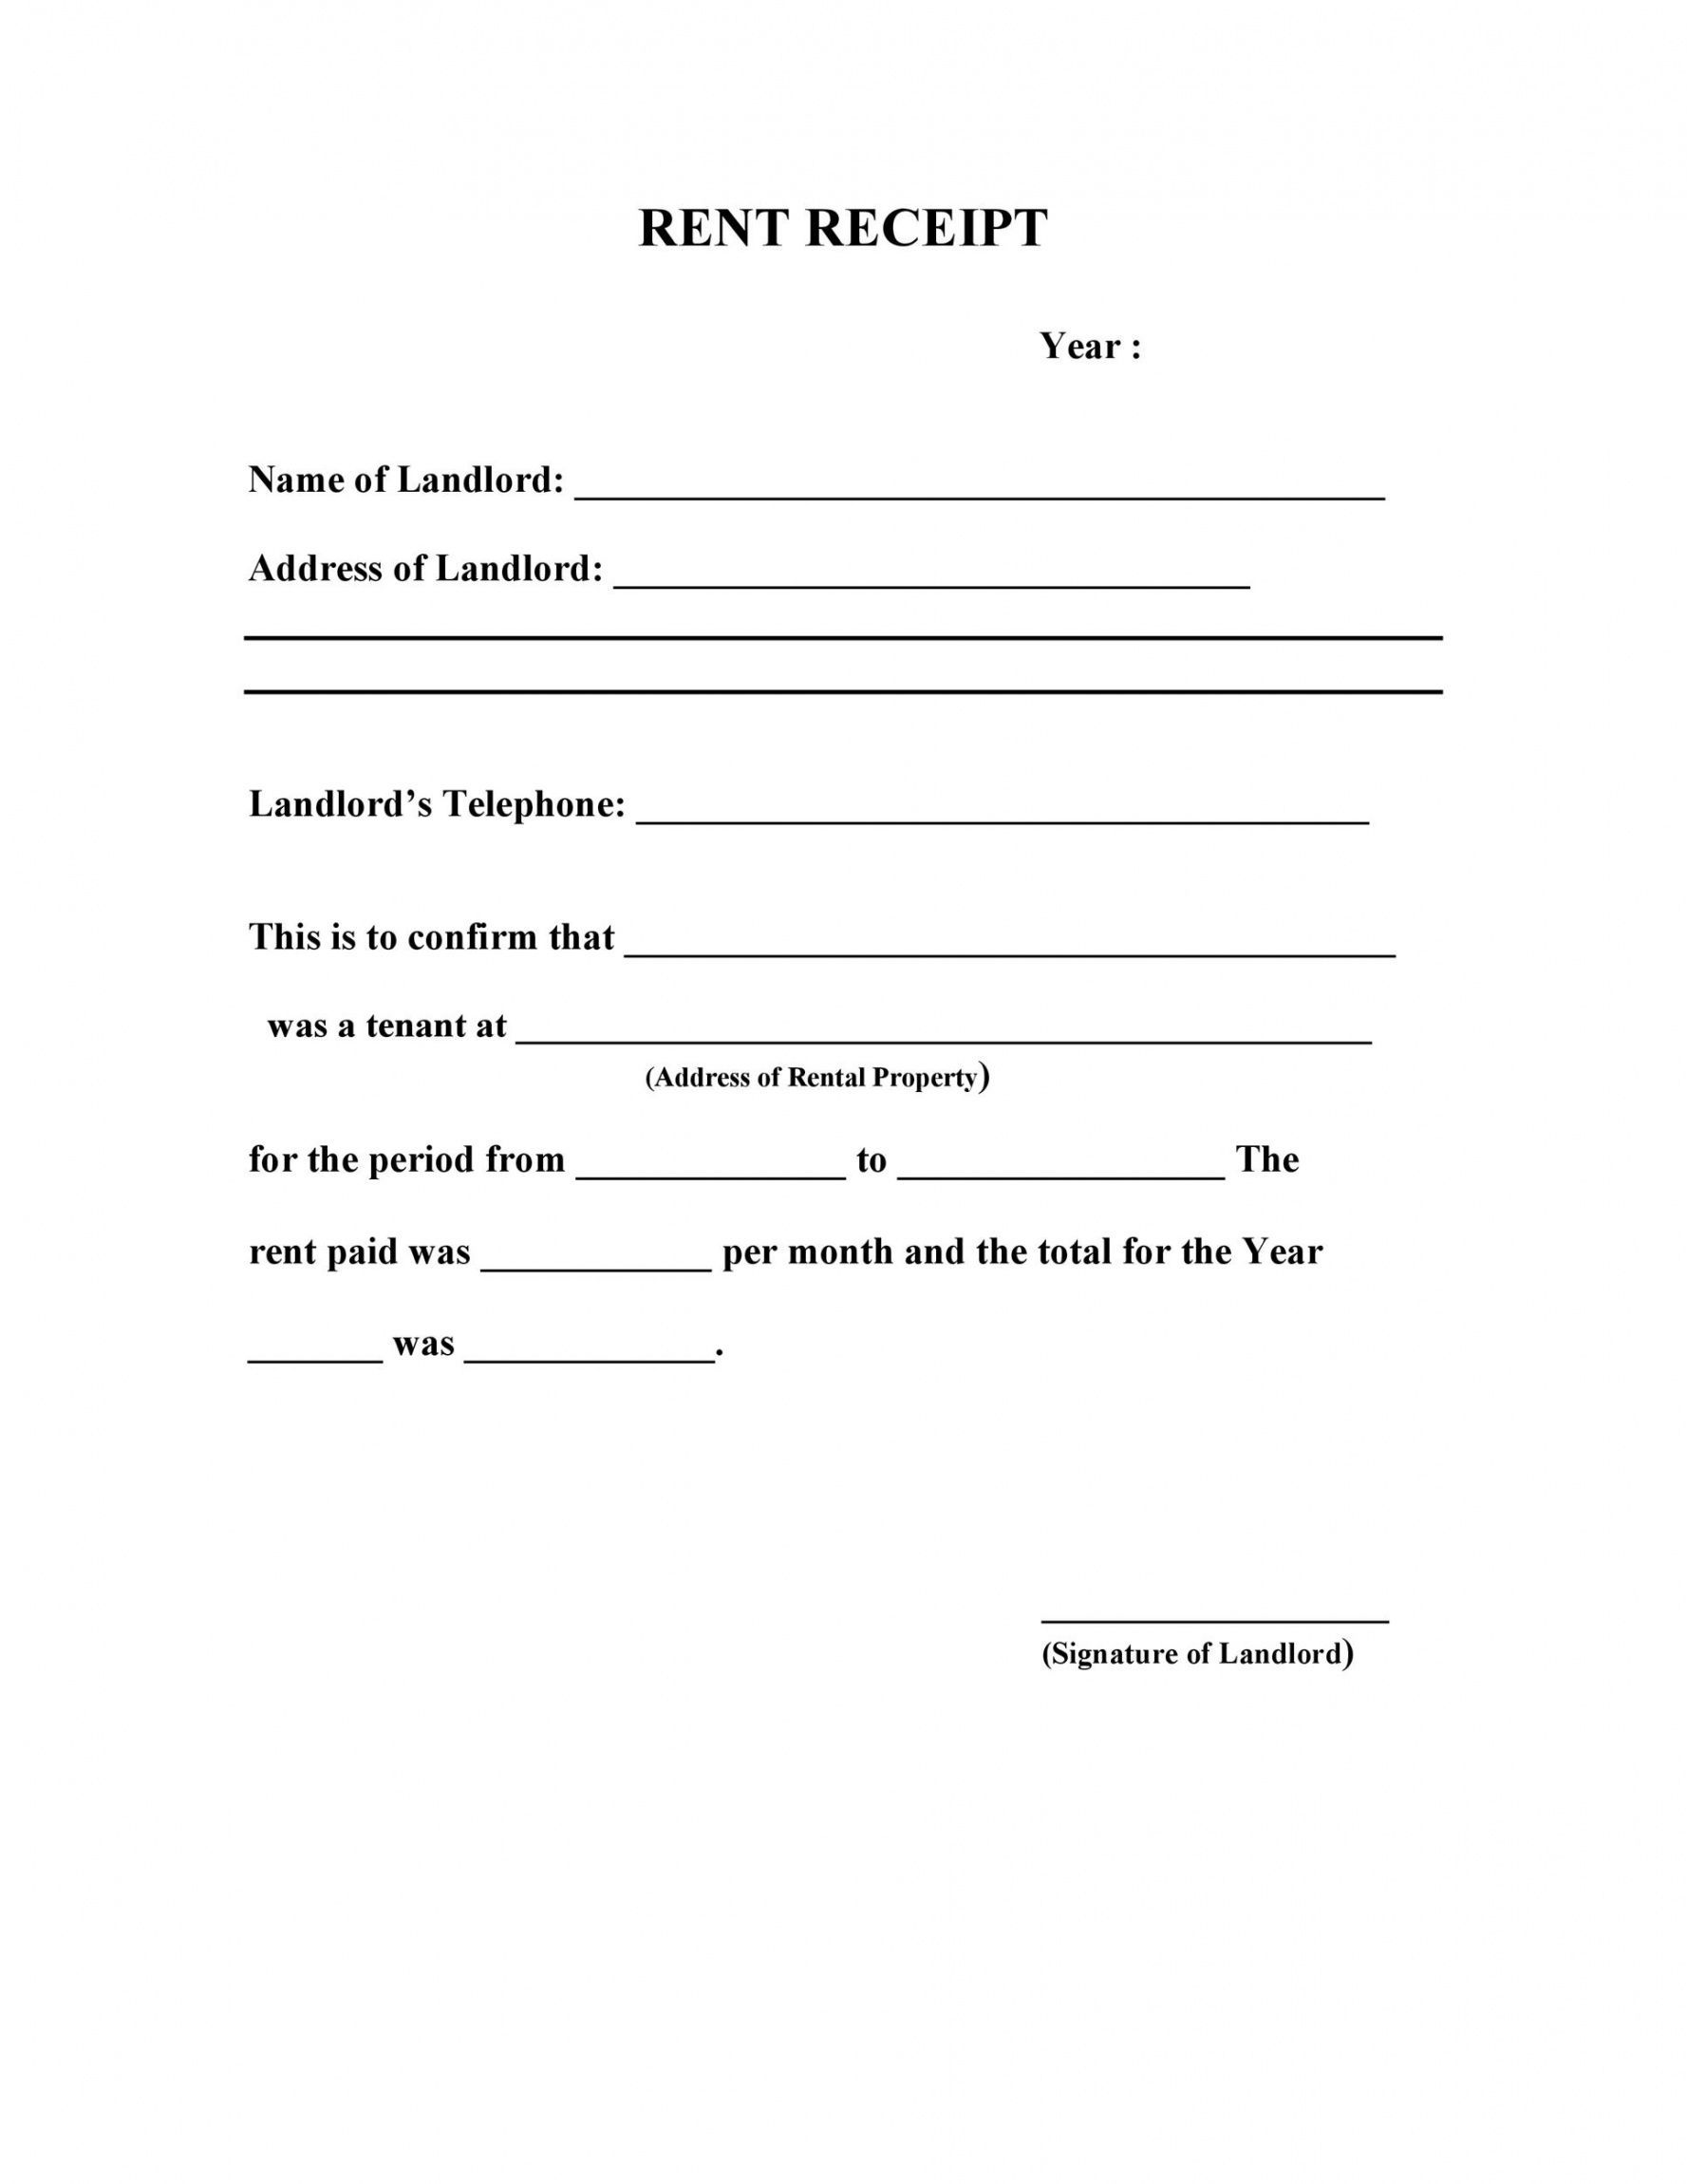 Browse Our Sample Of Rent Payment Slip Template Being A Landlord Receipt Template Templates